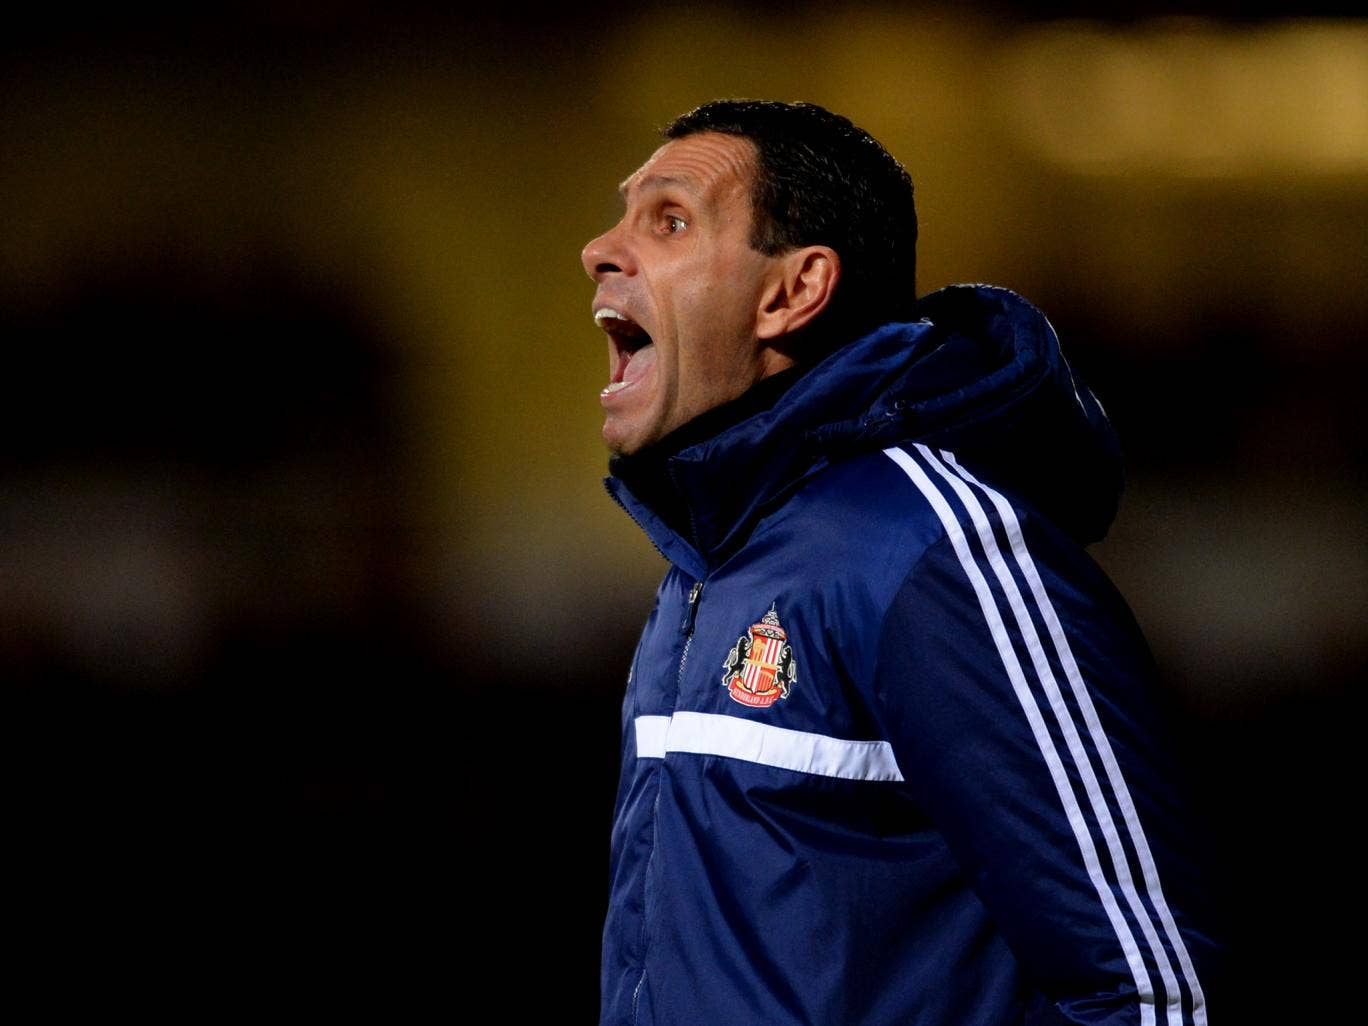 Sunderland Gus Poyet shows his frustration during the 0-0 draw with West Ham